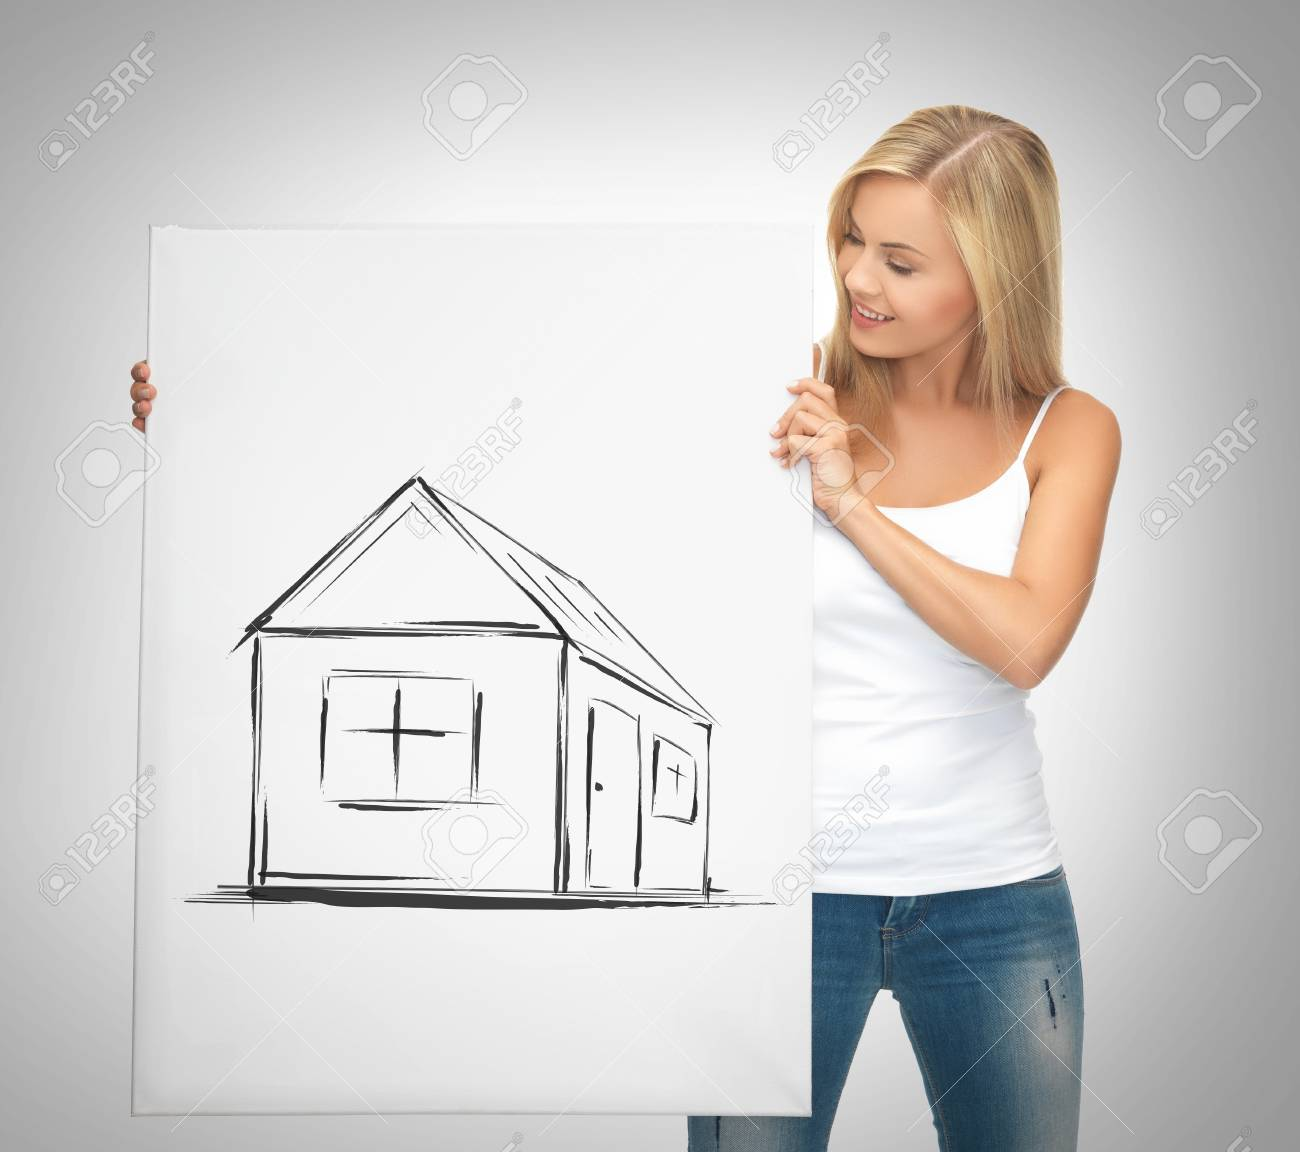 real estate, property, business and accomodation concept - woman holding picture with house Stock Photo - 21945606